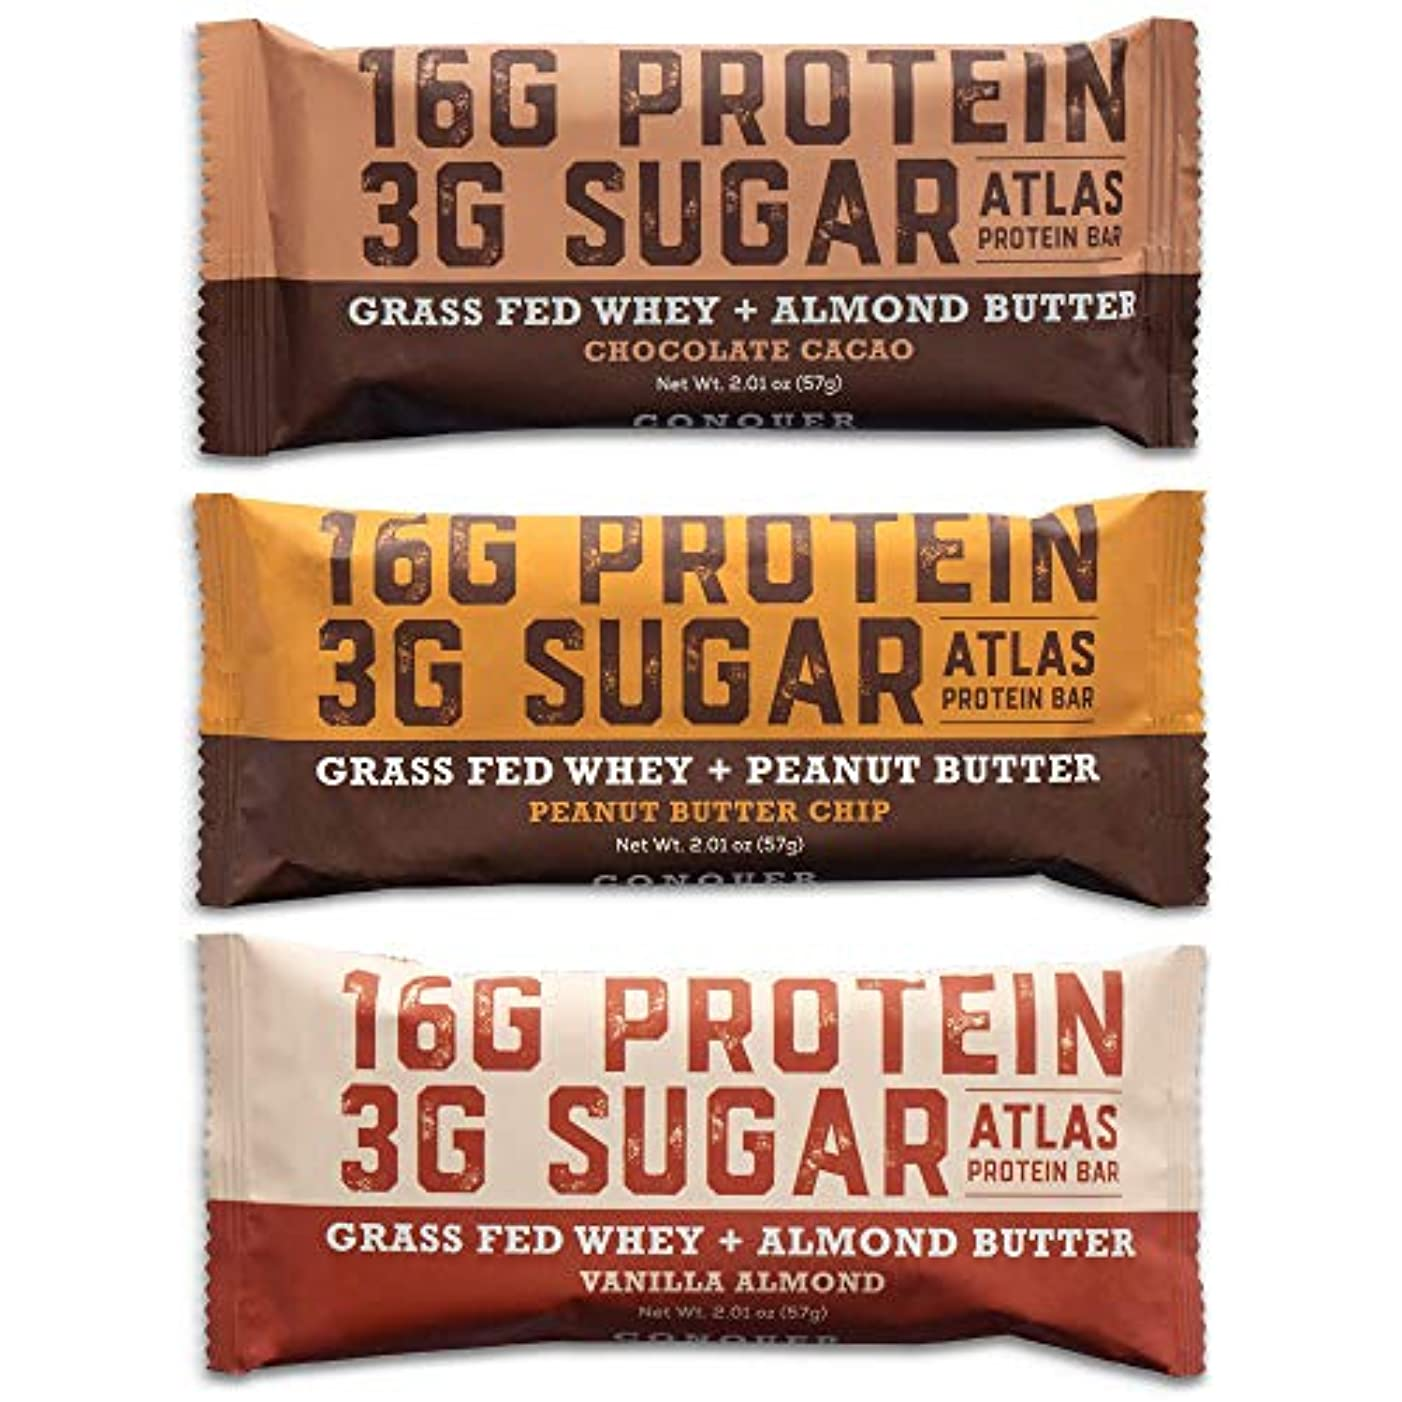 Atlas Bar - Keto/Low Carb Friendly Protein Bar, Variety Pack, 2.01 Ounce (9-Pack, 3 of Each Flavor) — Grass Fed Whey, Low Sugar, Clean Ingredients, All Natural, Gluten Free, Soy Free, and GMO Free